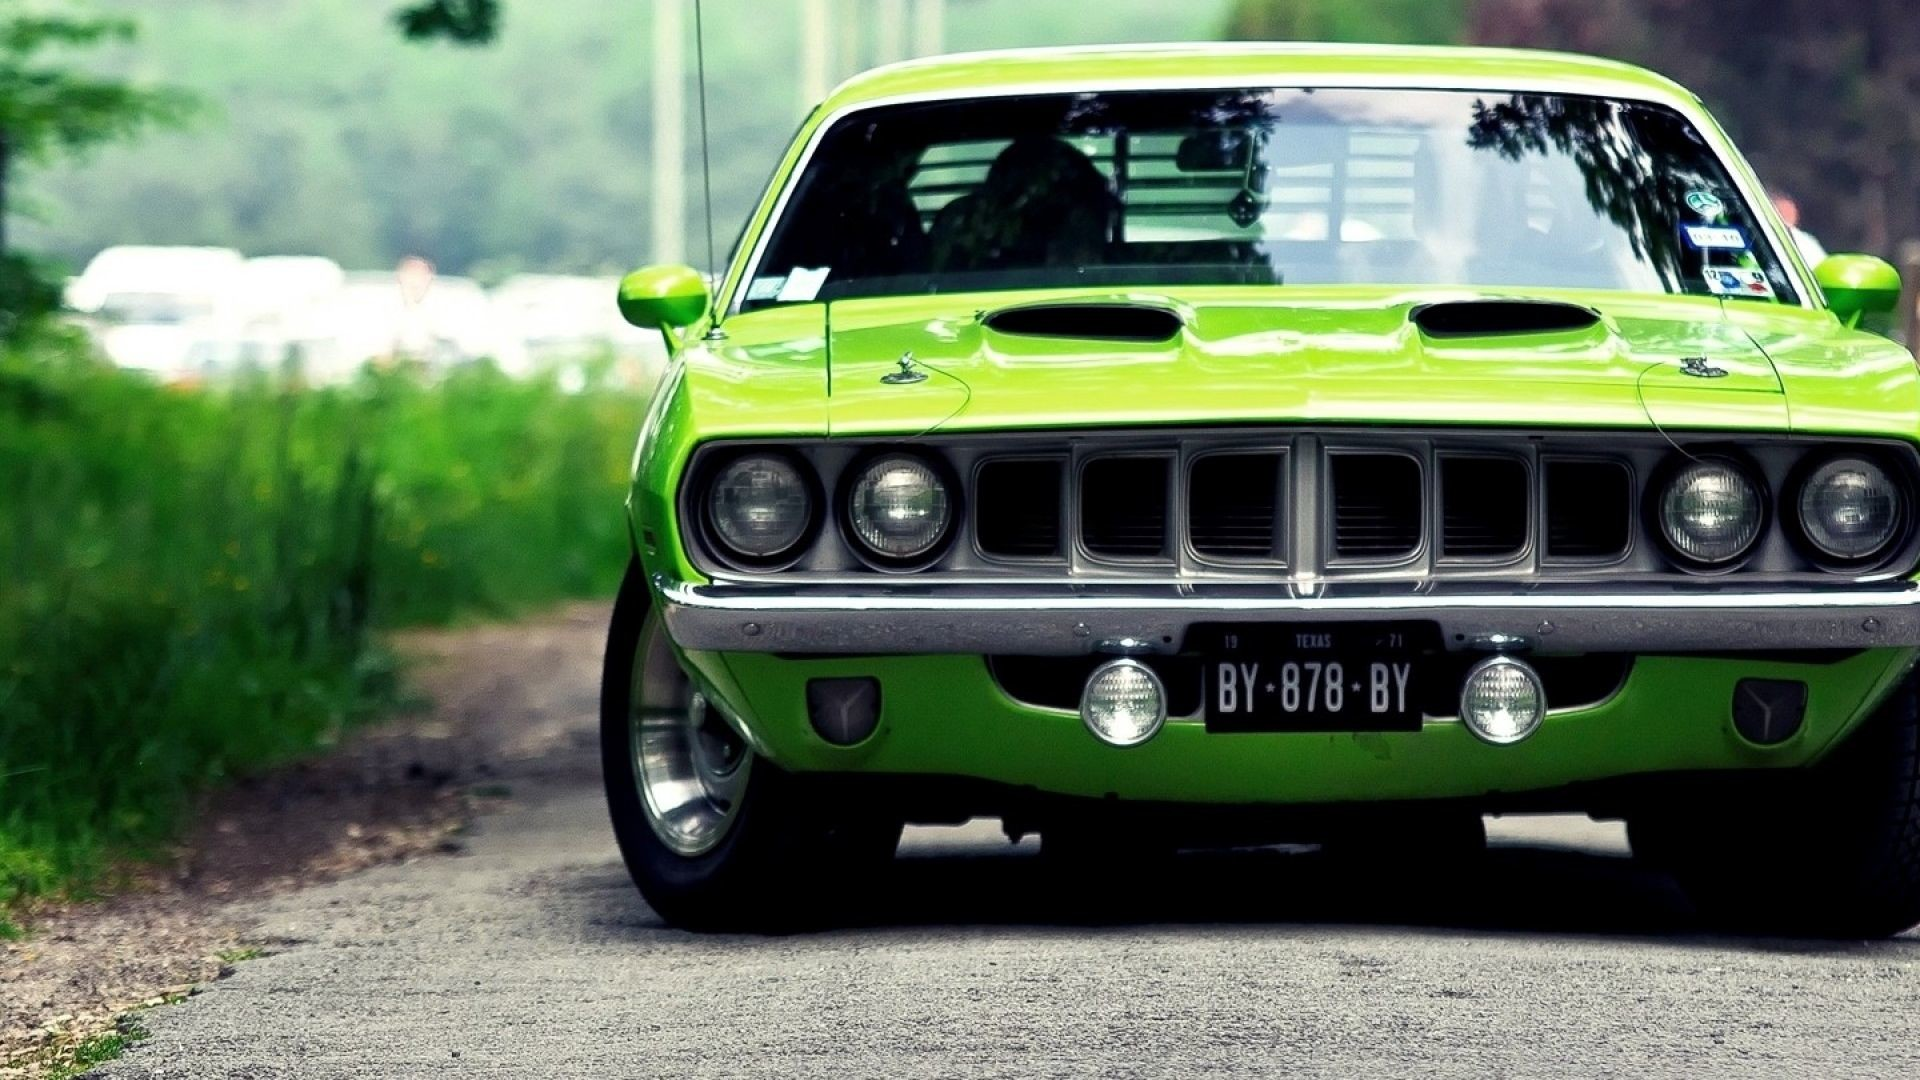 What Is Mopar >> Full HD Car Wallpapers 1920x1080 (63+ images)